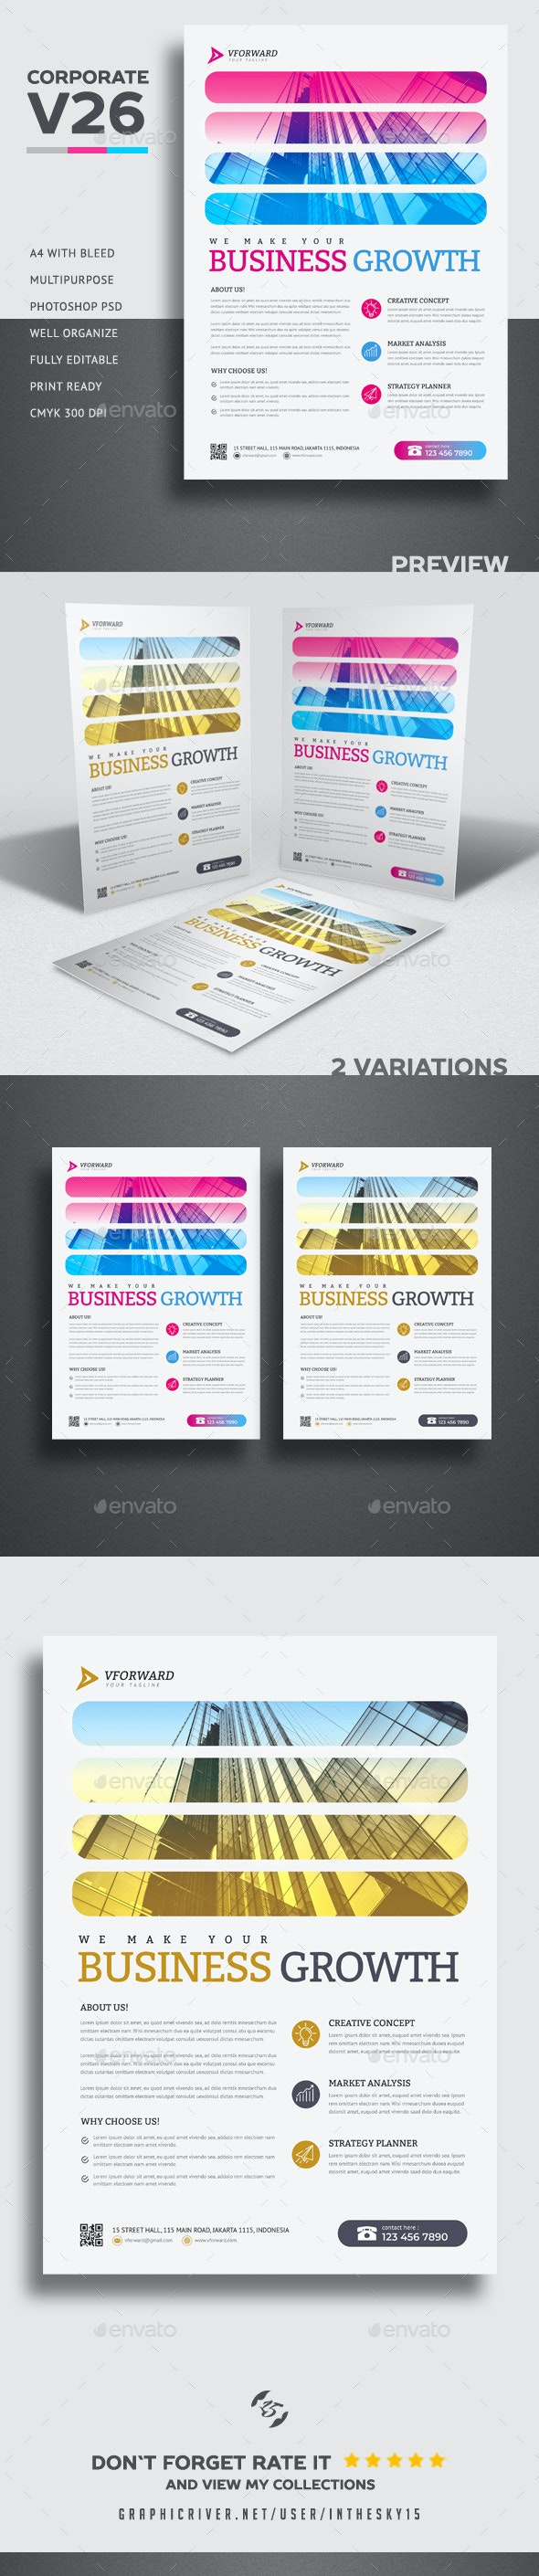 Corporate V26 Flyer - Corporate Flyers